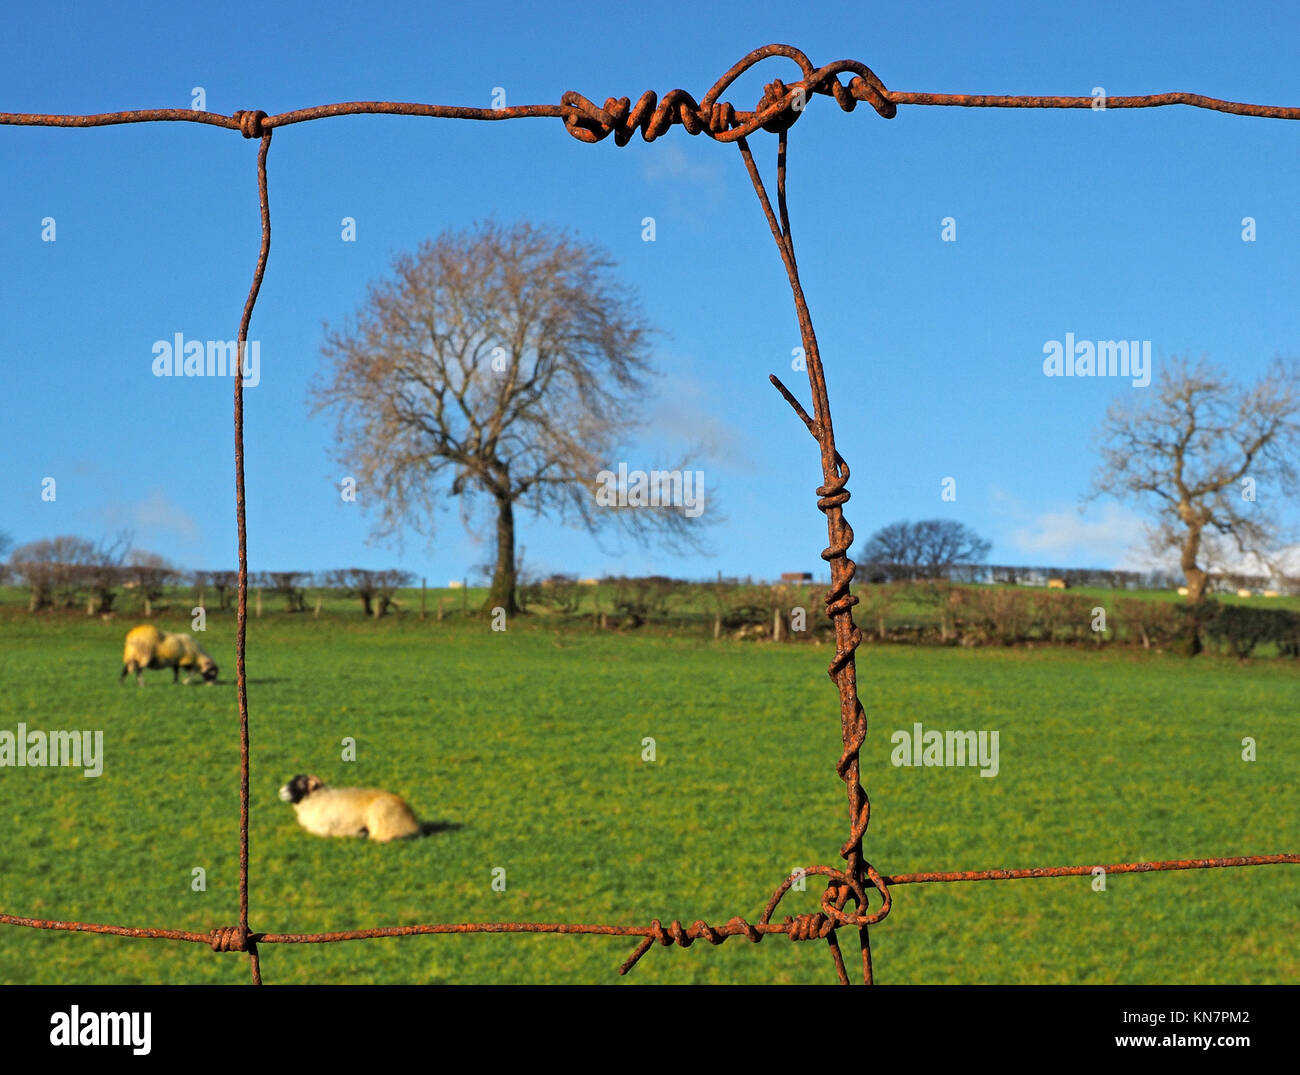 Tangled Fence Wire Stock Photos & Tangled Fence Wire Stock Images ...